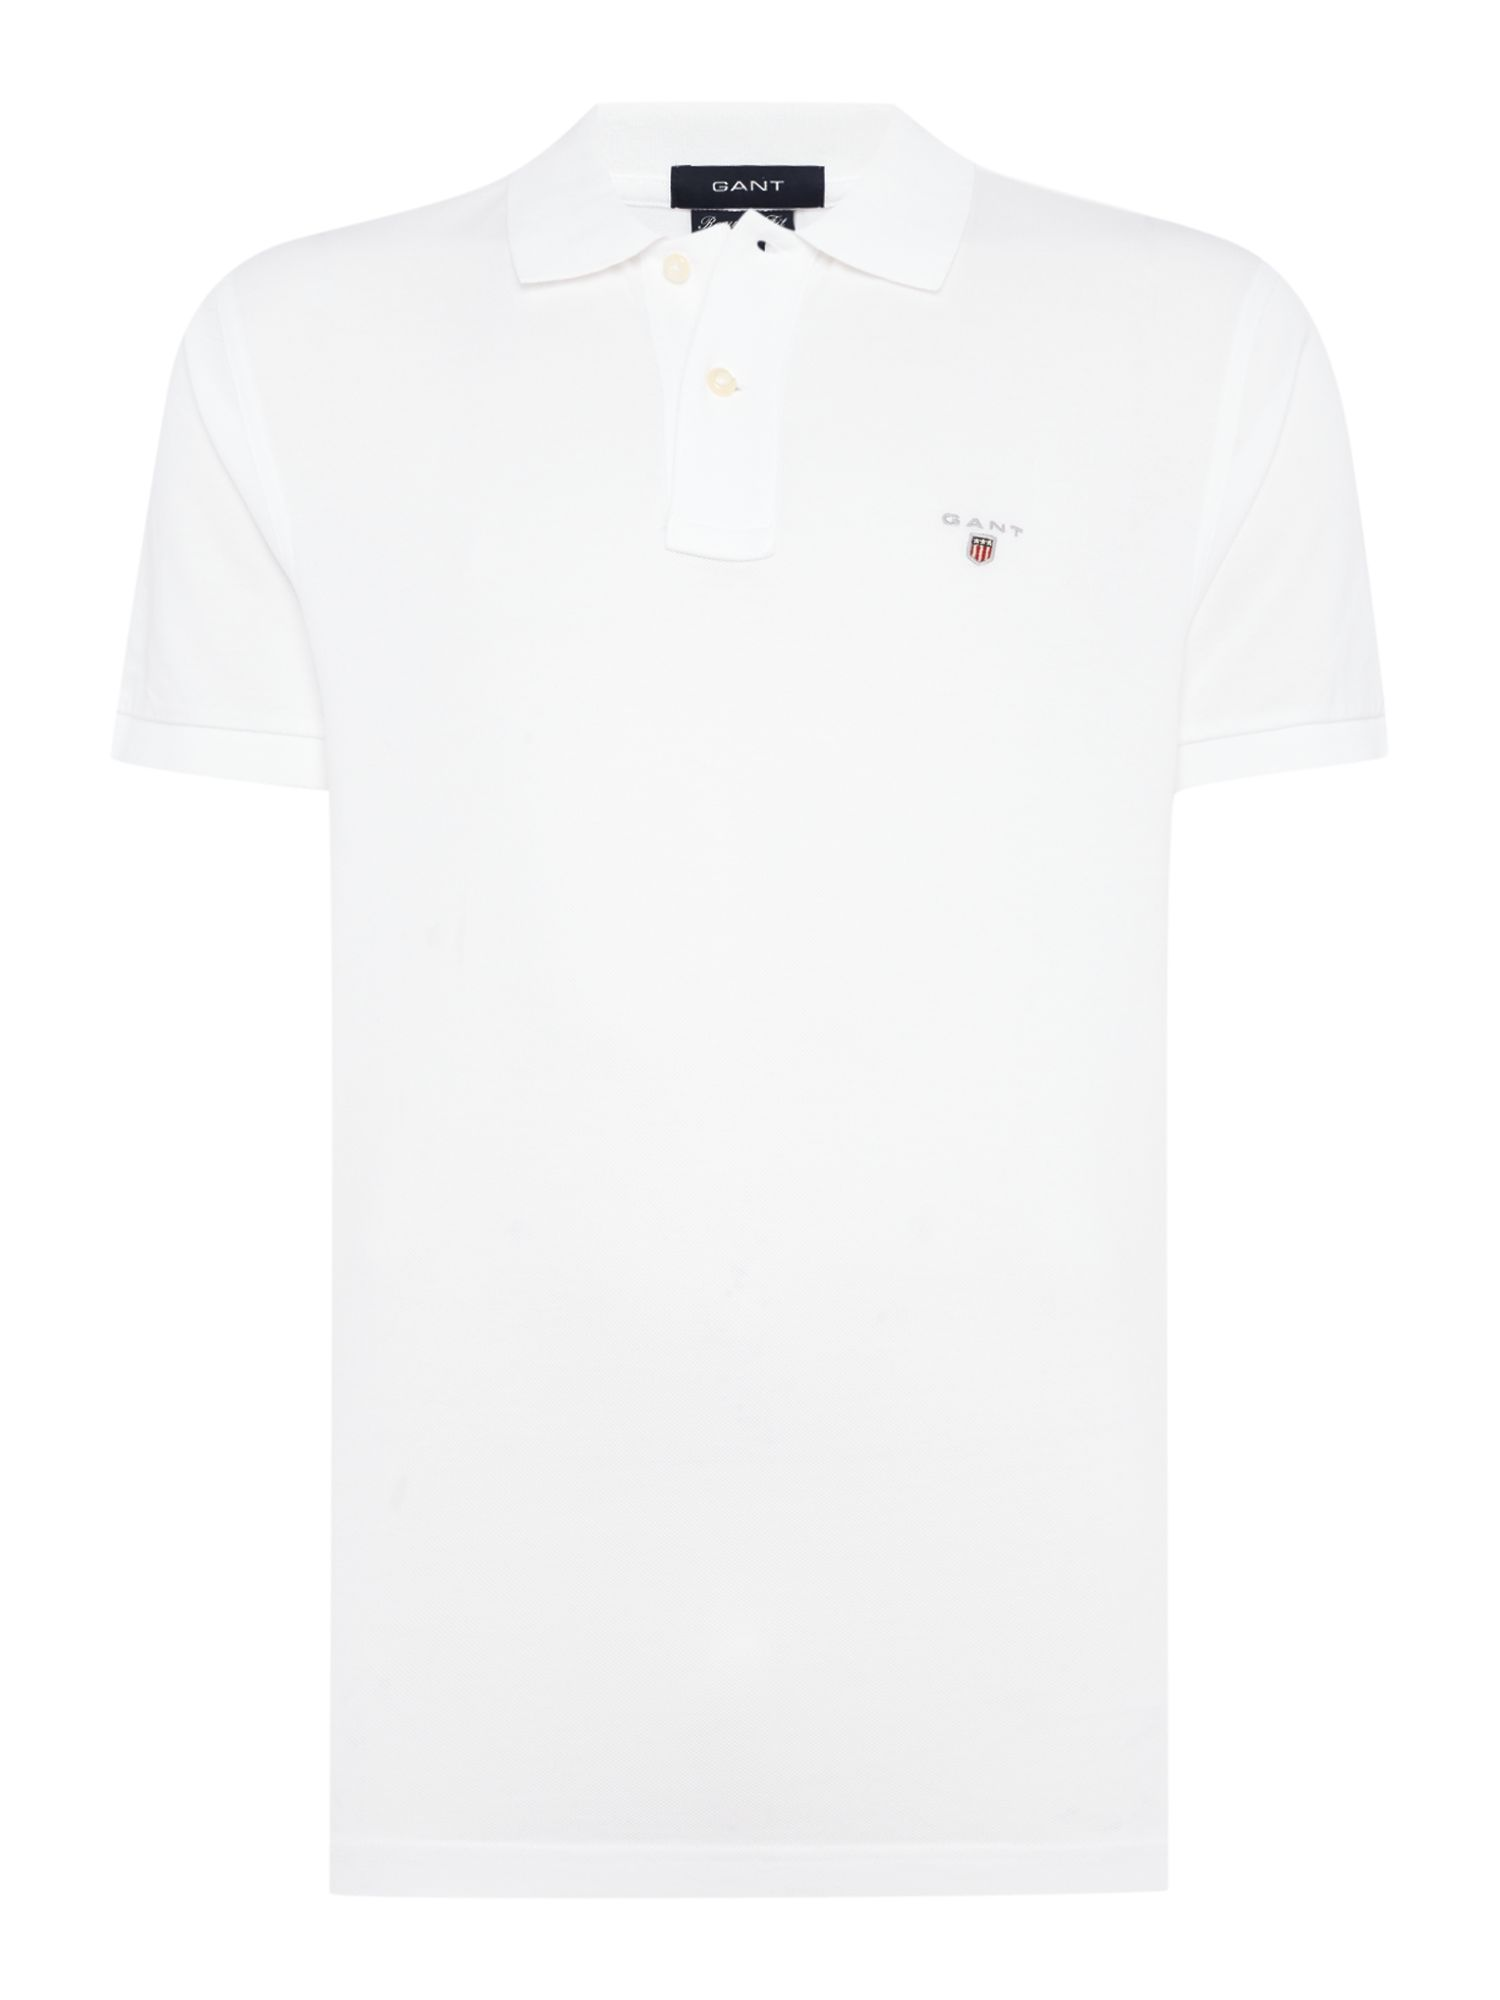 Men's Gant Pique Short Sleeve Polo Shirt, White